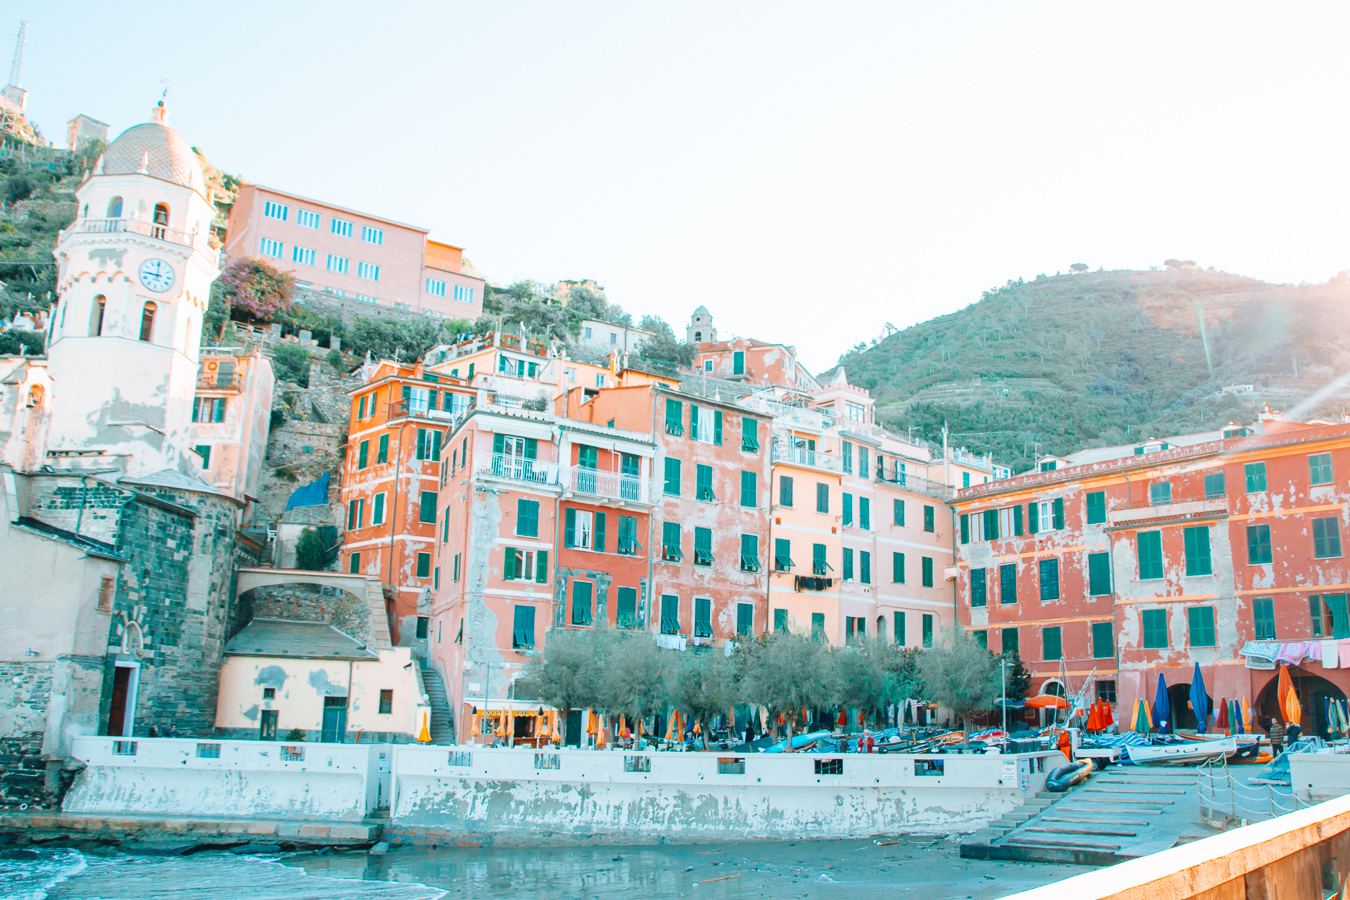 A few houses in Vernazza